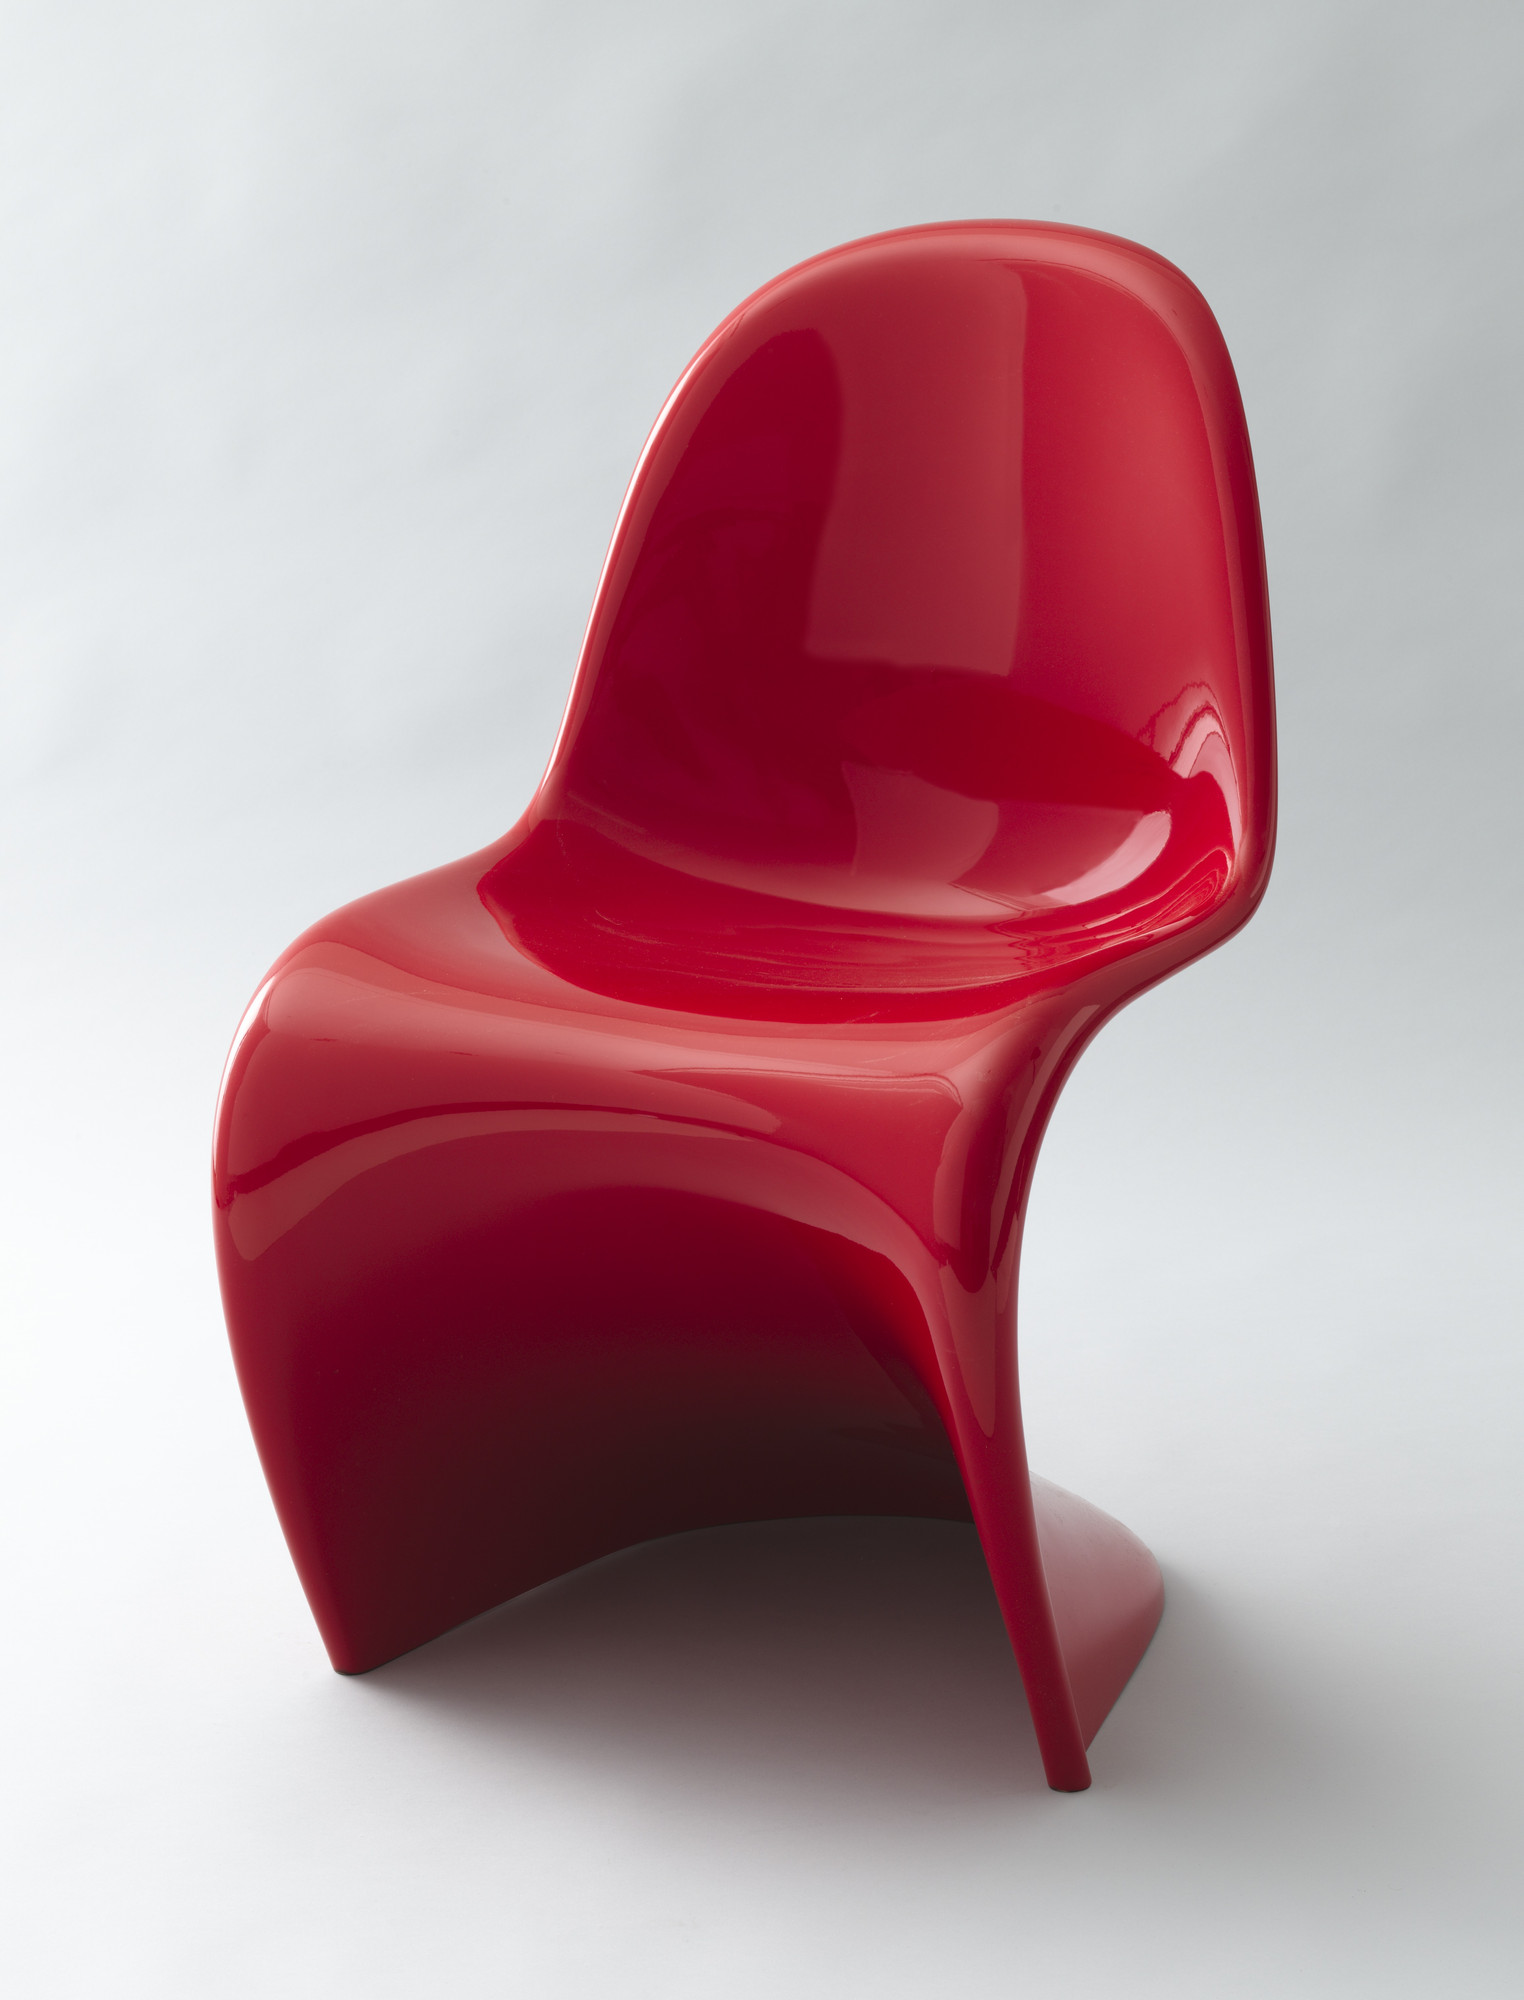 verner panton stacking side chair designed 1959 60 this example